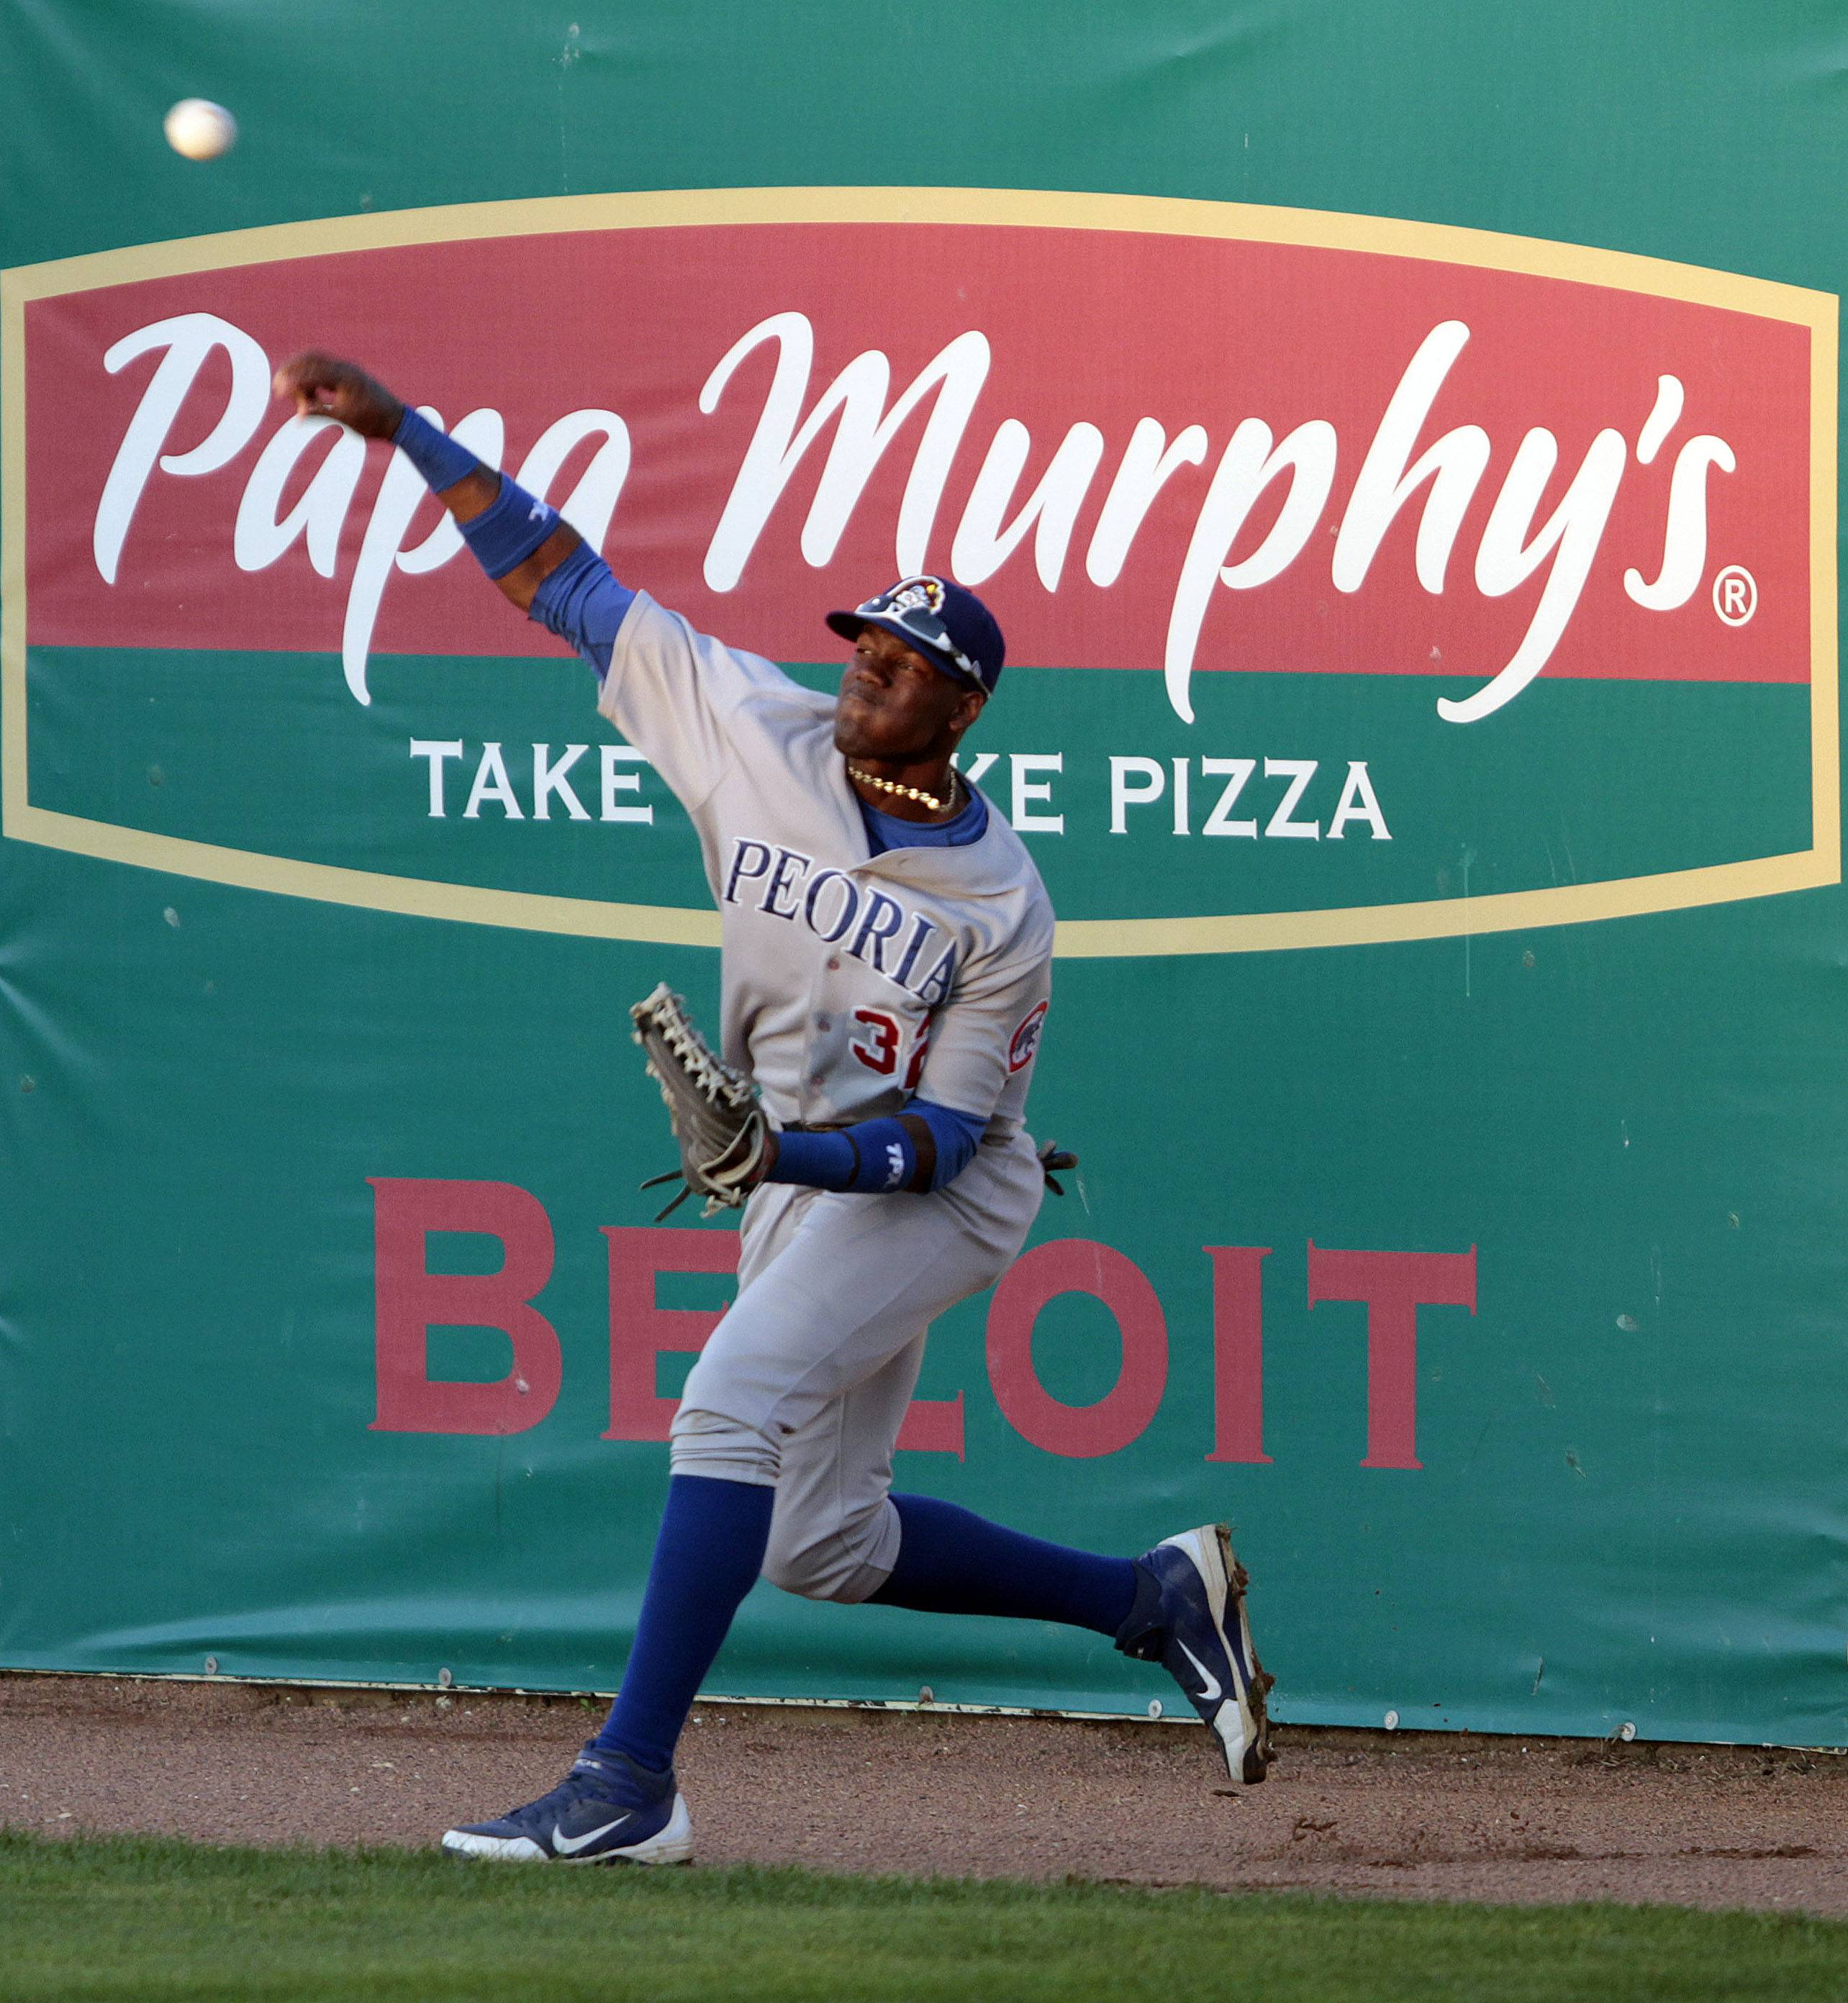 Cubs prospect Jorge Soler connects fires the ball to second as the Class A Peoria Chiefs took on the Beliot Snappers Monday night in Beliot, Wisconsin. Soler signed a 9-year, $30 million contract this summer.